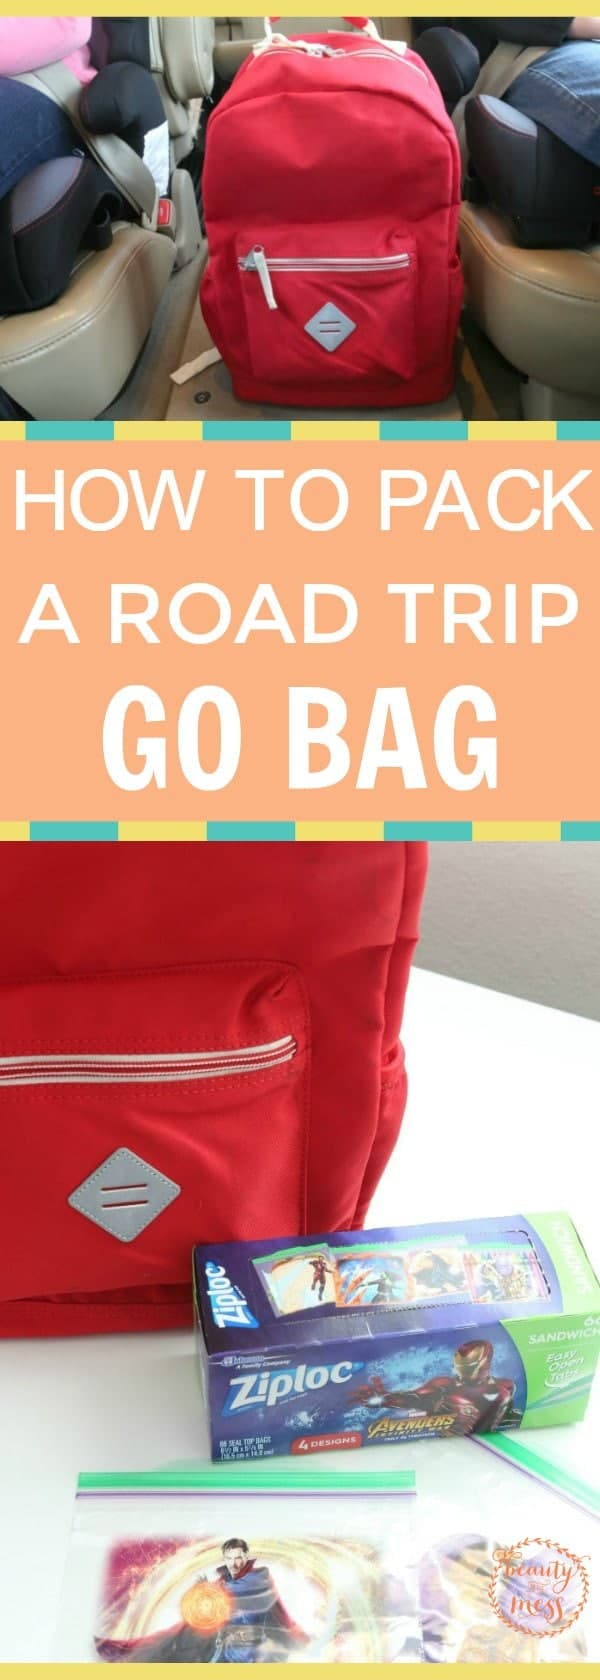 The #roadtrip go bag is your #sanitysaver for road trips this #Summer.